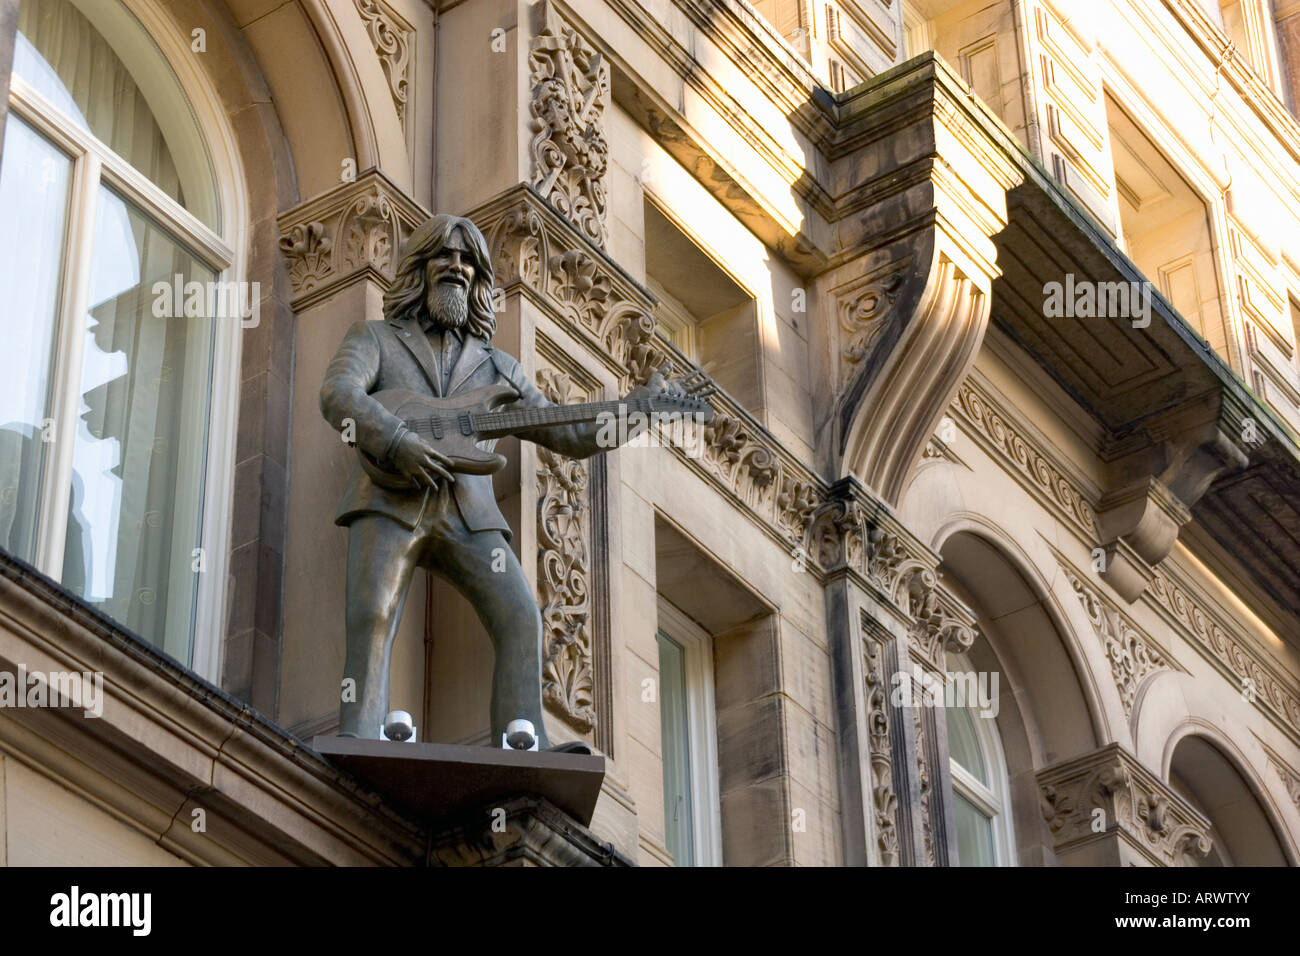 HARD DAYS NIGHT HOTEL IN LIVERPOOL AND STATUE OF GEORGE HARRISON ON THE HOTEL FACADE Liverpool home of The Beatles - Stock Image